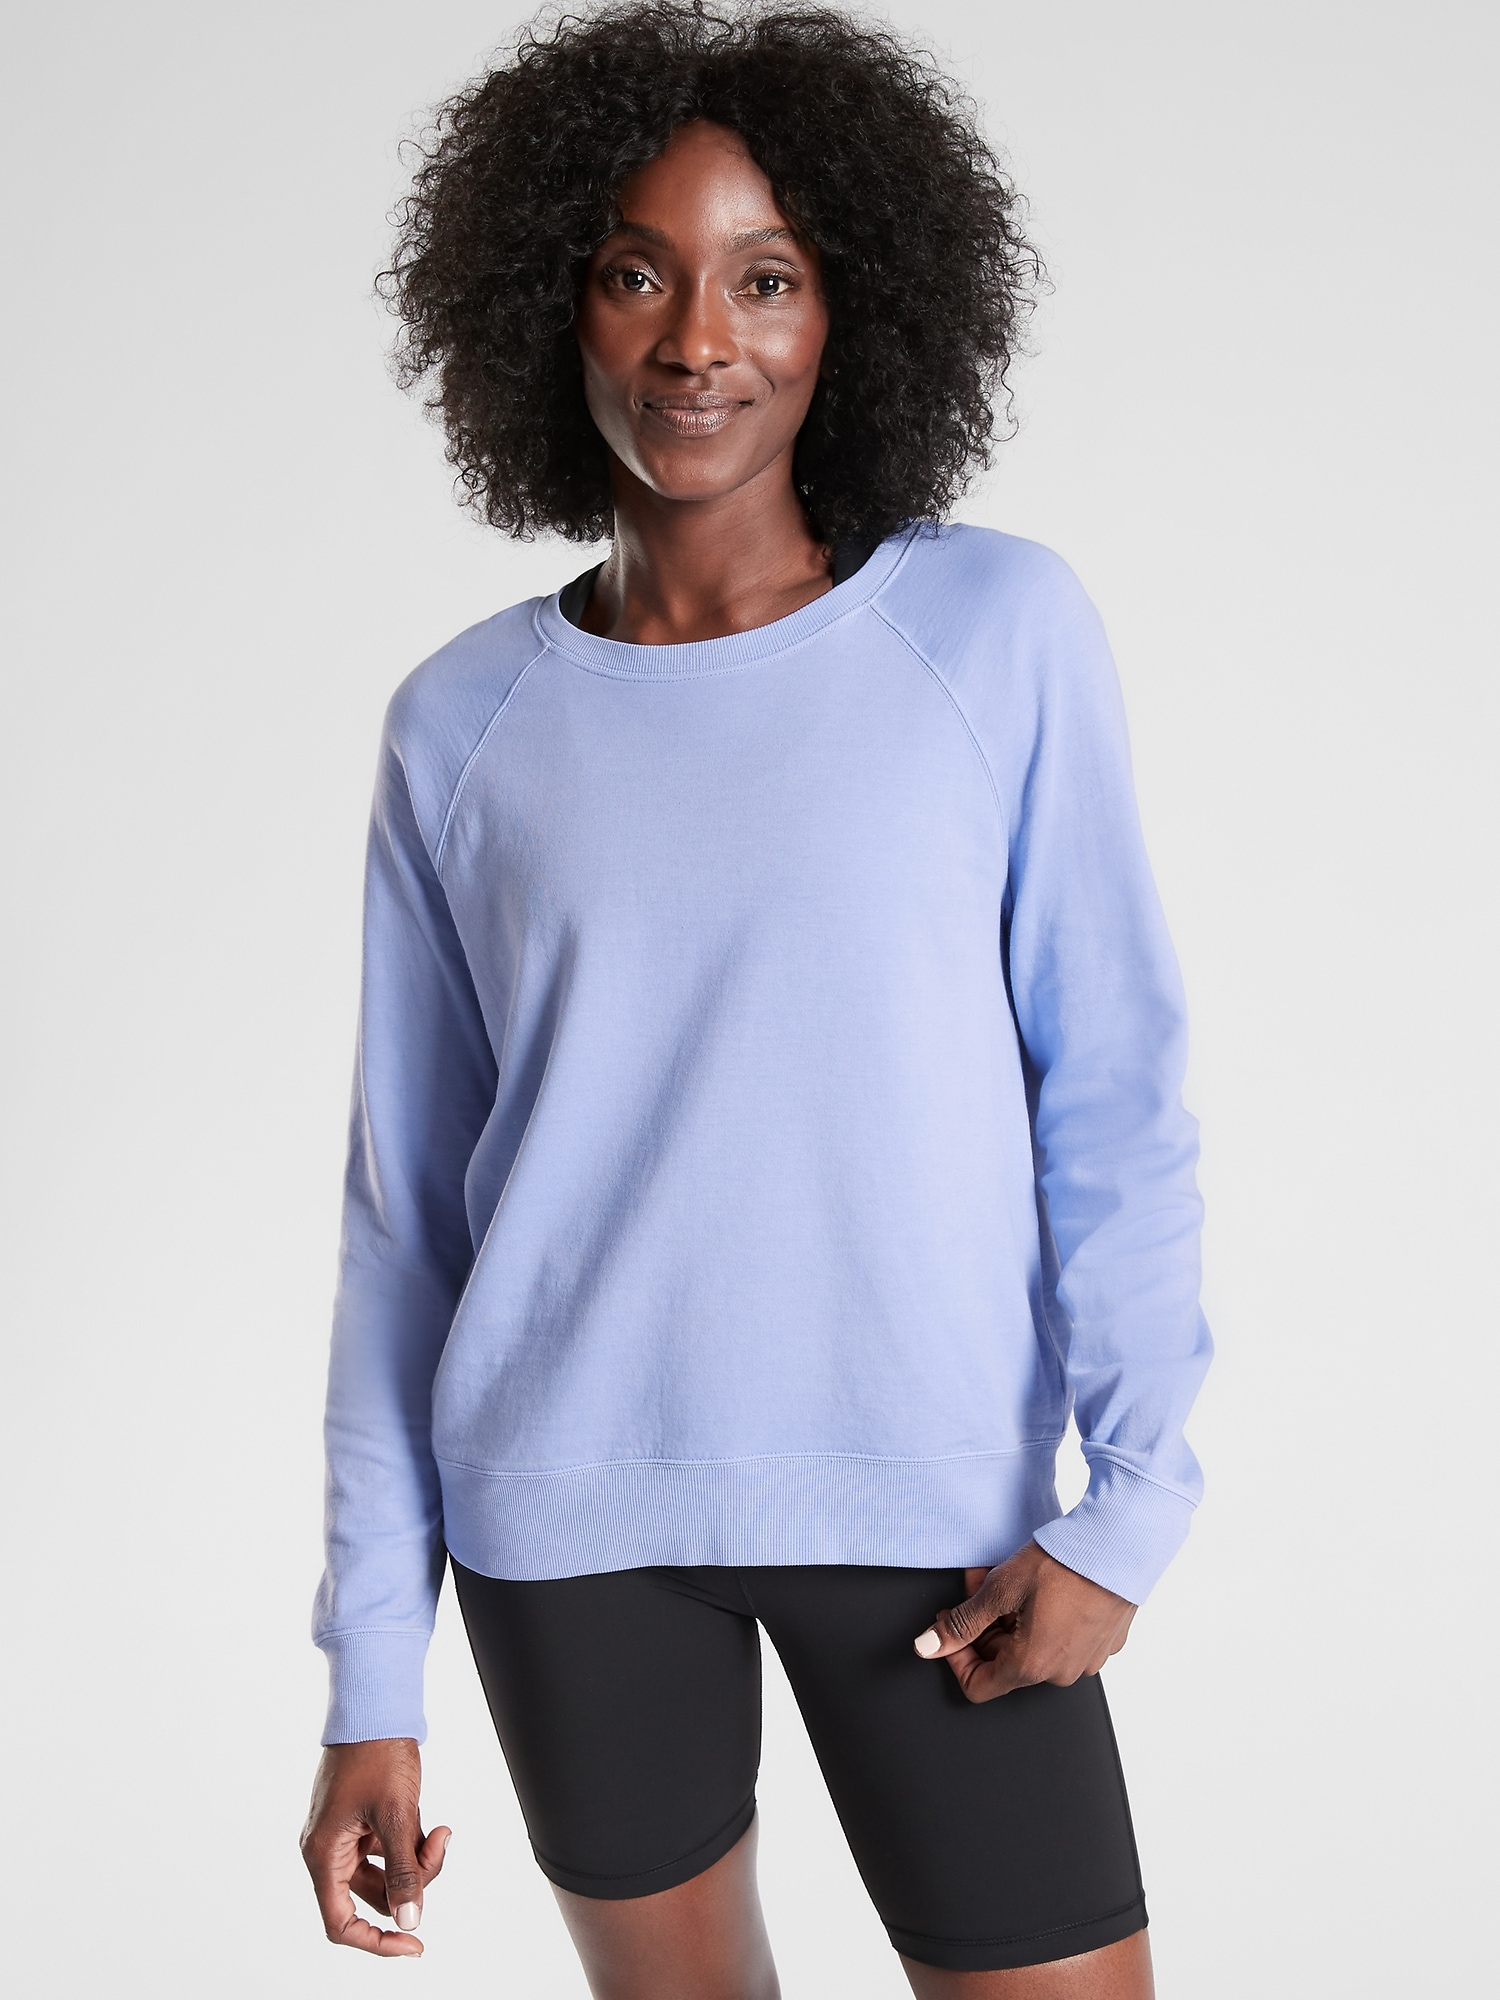 NEW Womens Athleta Sundown Sweatshirt NWT Small and XSmall